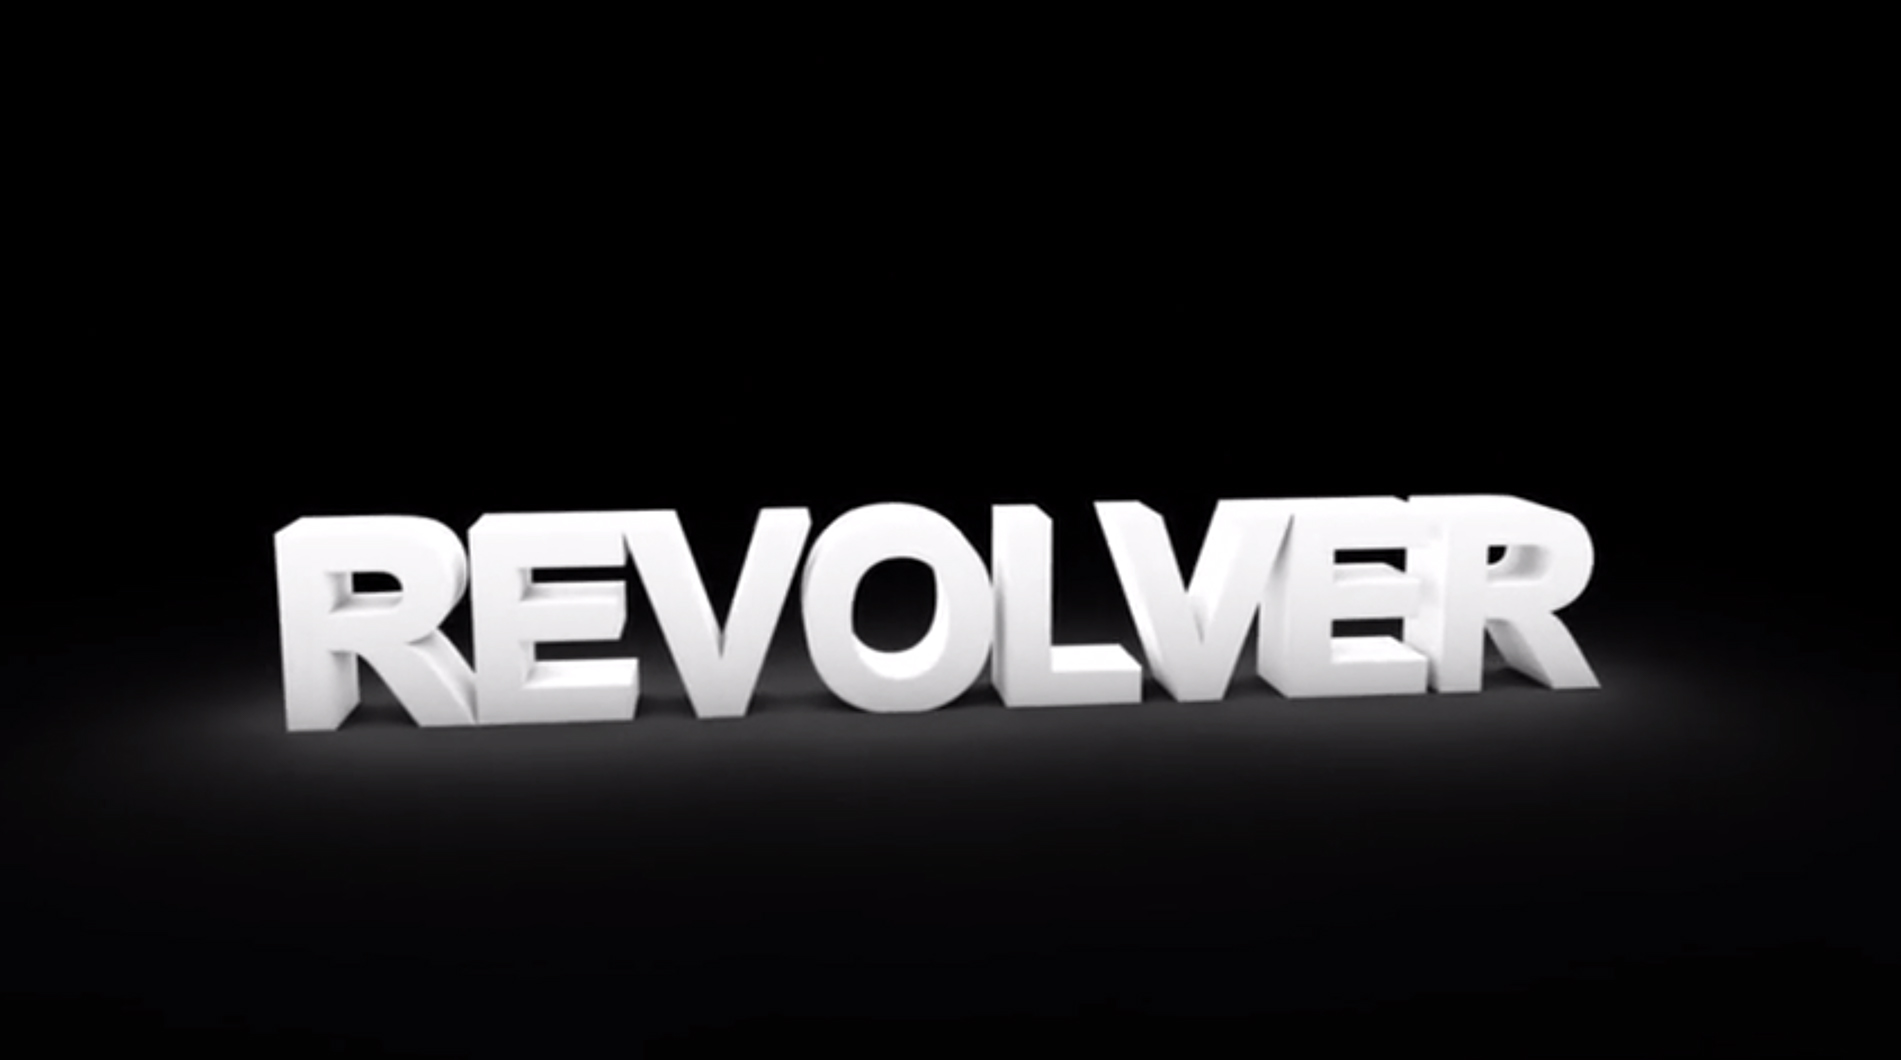 Revolver (Full Movie) - Poor Boyz Productions